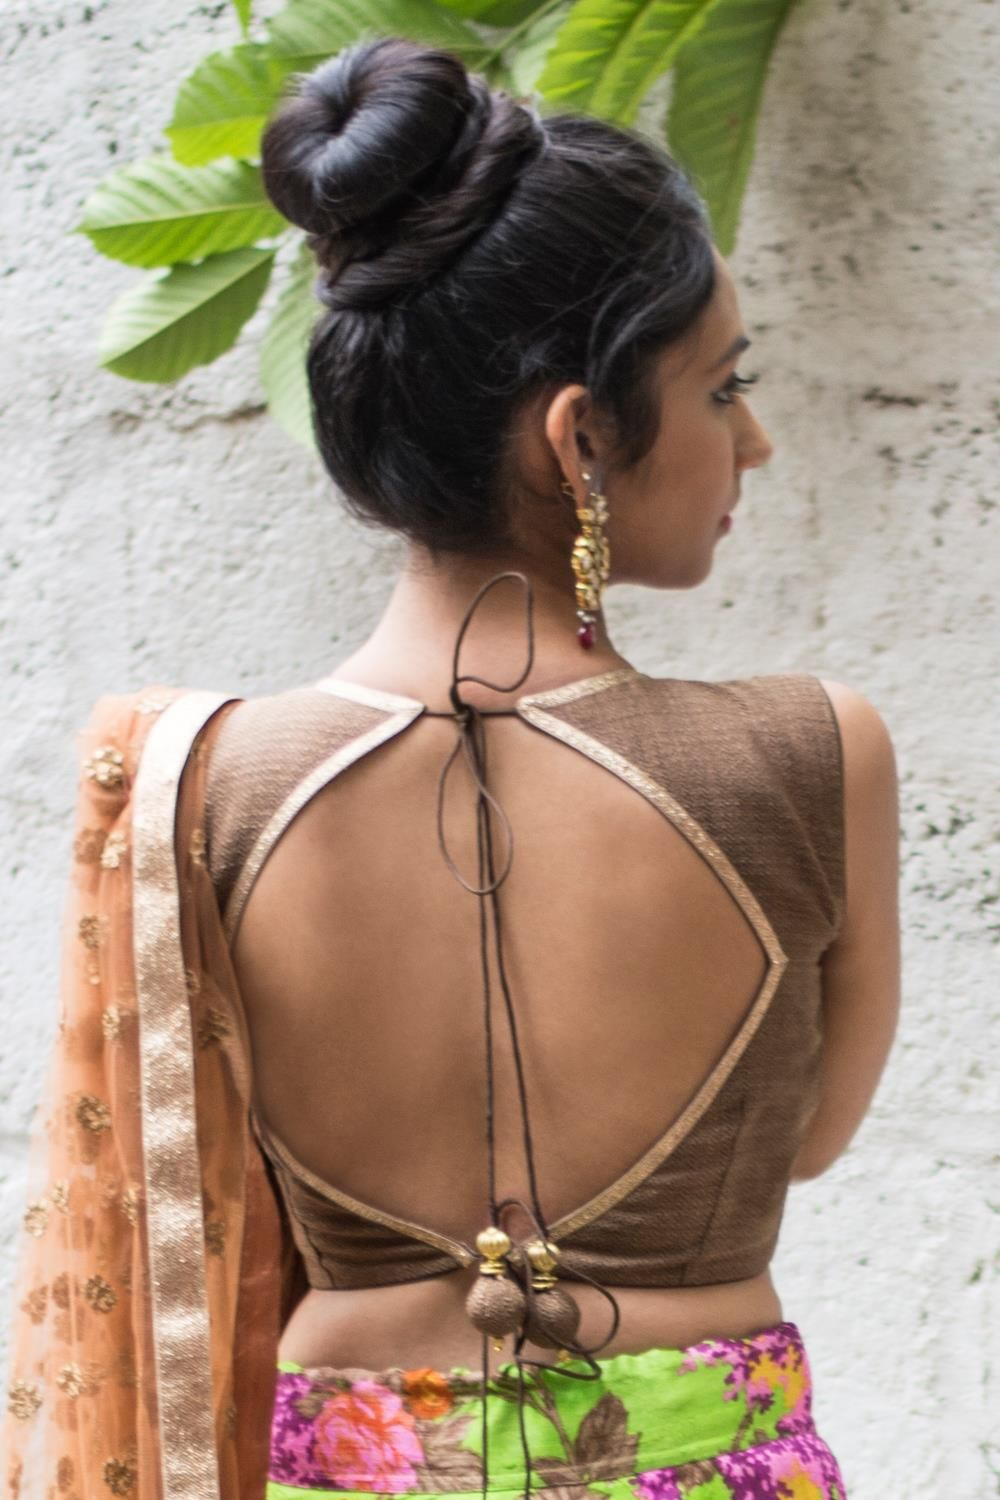 Ready to shop blouses   House Of Blouse Ready to shop blouses   House Of Blouse textured brown jute brocade - Redefine sensual elegance in this earthy brown round neck blouse. The sparkle at the neckline and the back is added by placing a slim dull copper border. This simple timeless blouse may fast become your go to, multi-occasion blouse. For enquiries Whatsapp +91 81050 68601. *Shipping worldwide* #saree #blouse #sareeblouse #blousedesigns #desi #indianfashion #india #bollywood #brown